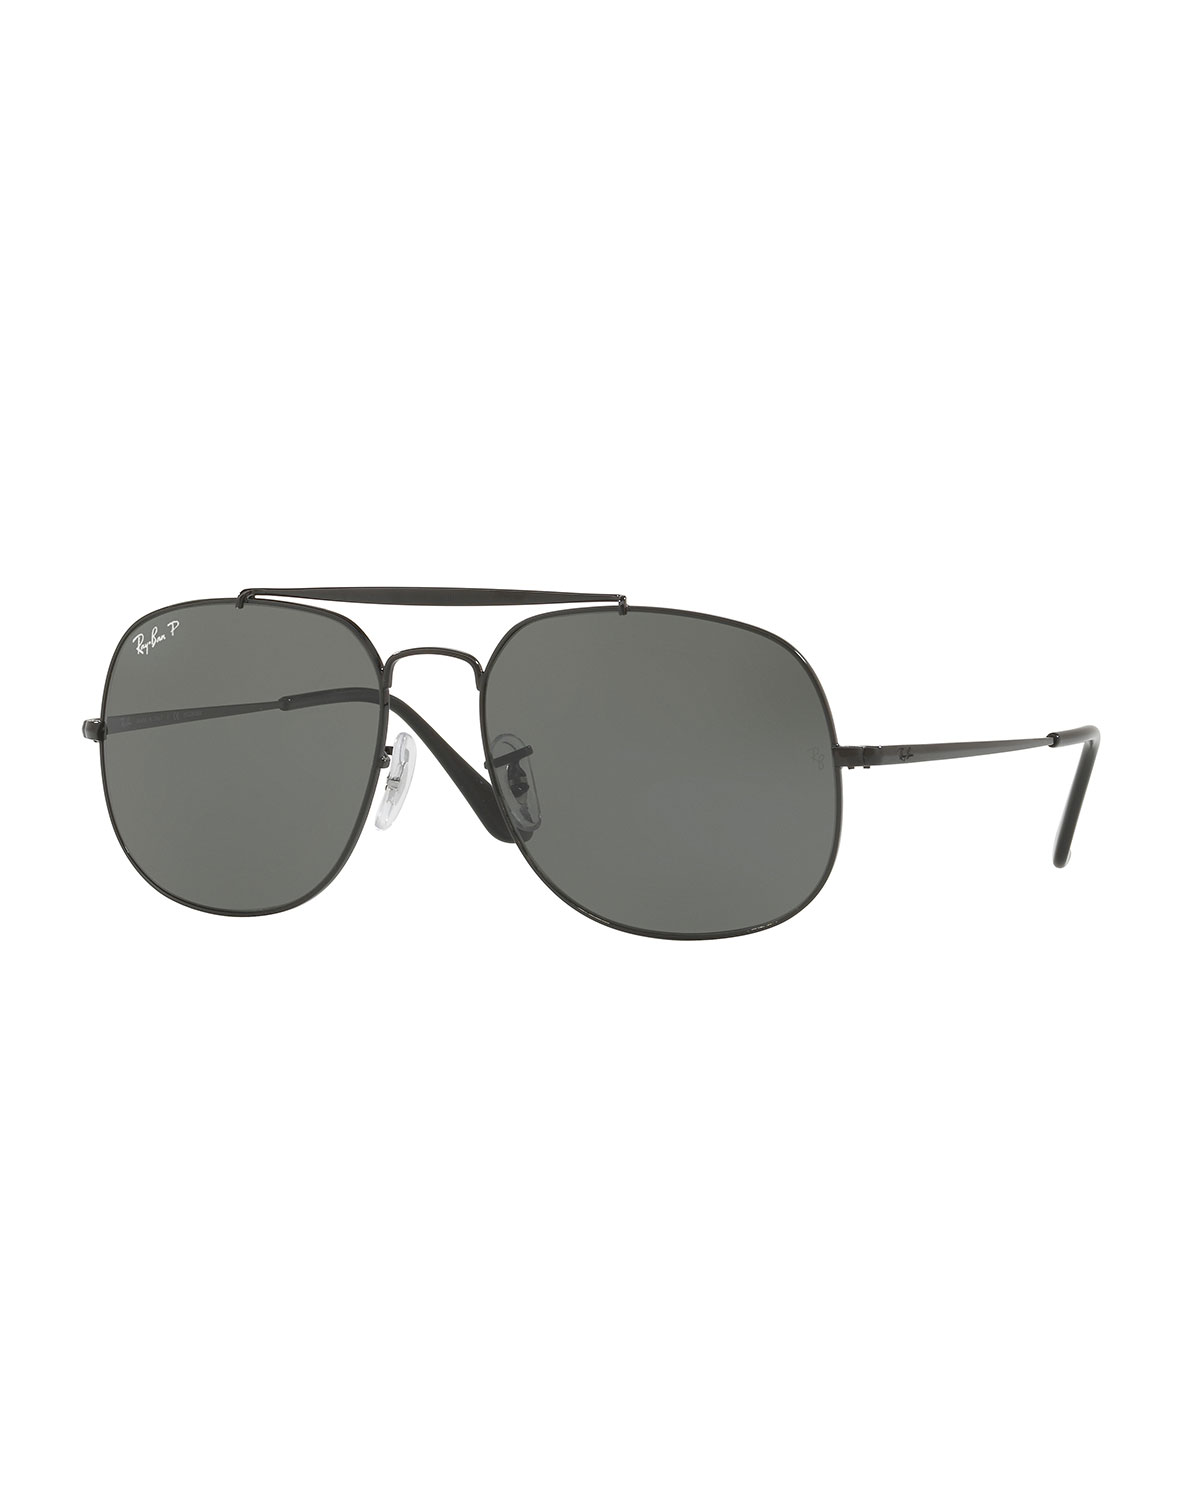 95dbe79ef2 Ray-Ban The General Polarized Aviator Sunglasses